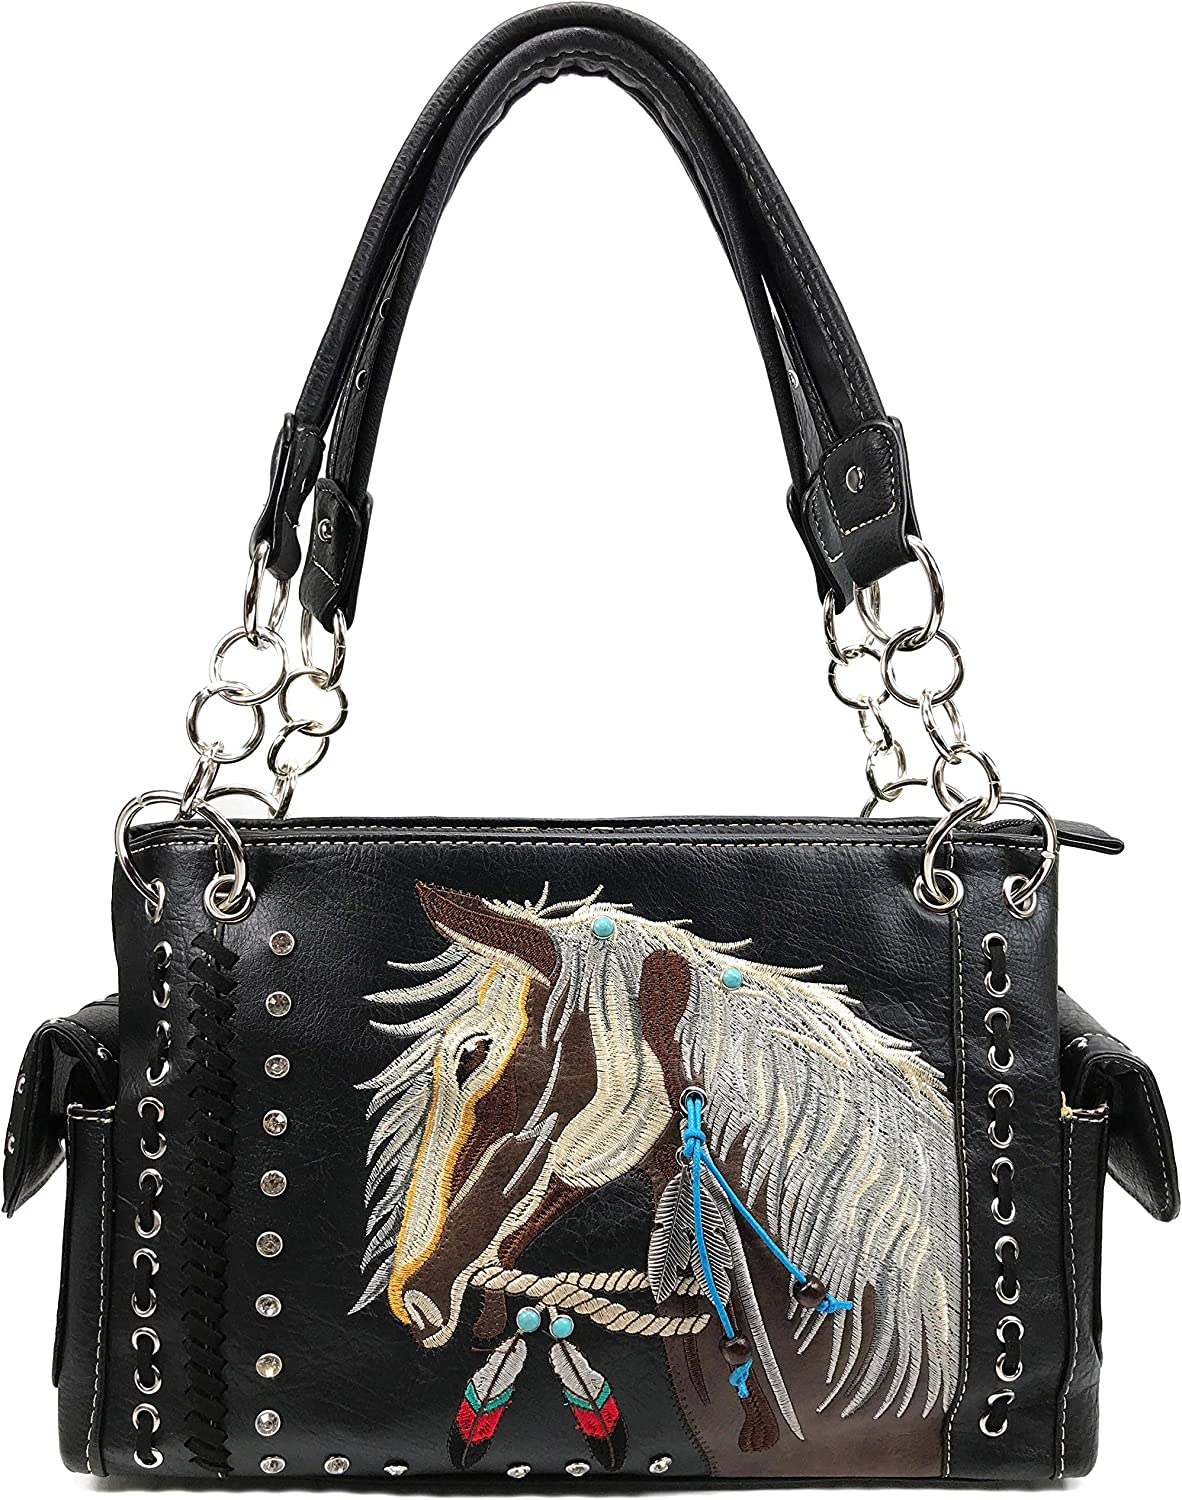 Zelris Dakota Dales Pony Horse Embroidery Mane Western Country Women Conceal Carry CCW Shoulder Handbag Purse